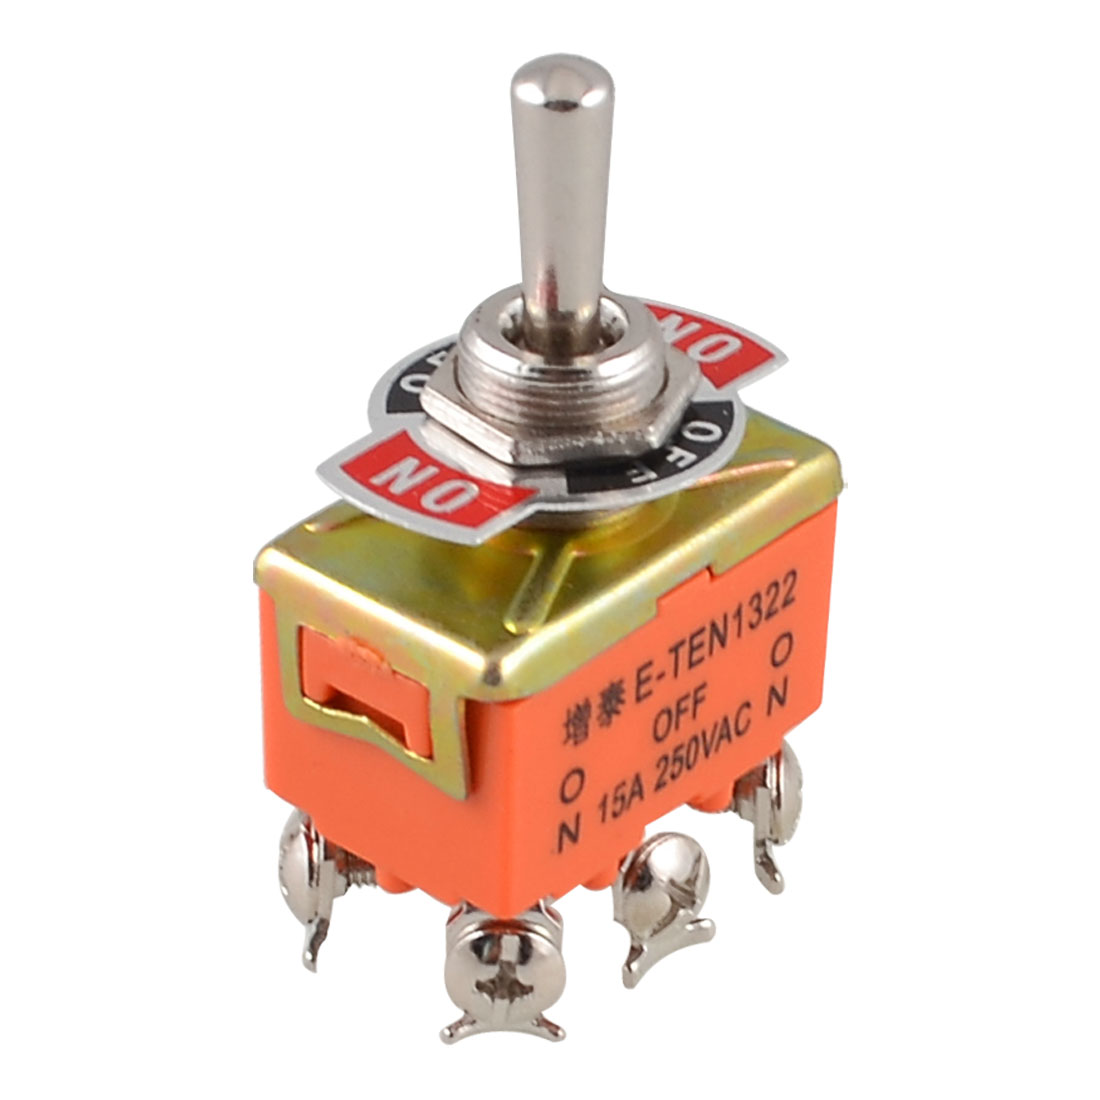 AC 250V 15A Latching 3 Way On-Off-On Single Pole Double Throw Toggle Switch